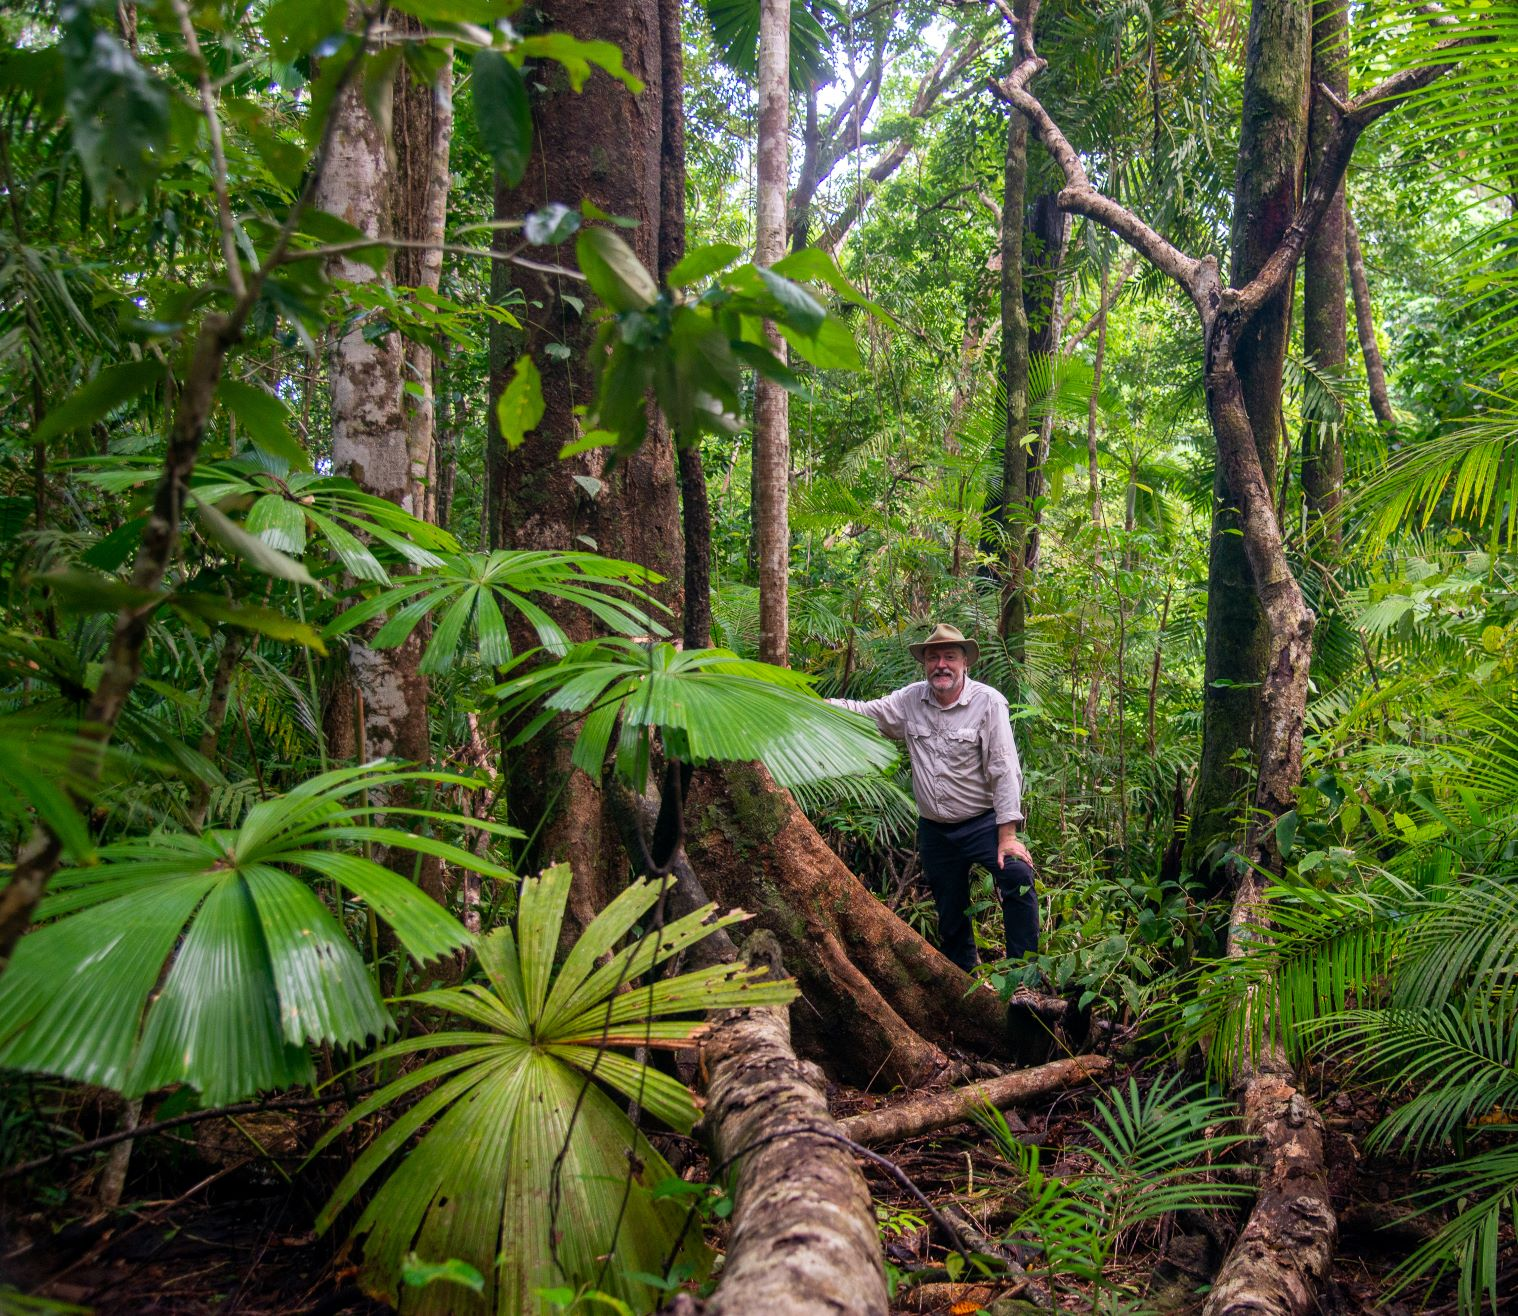 Old-growth tropical rainforest in the Daintree